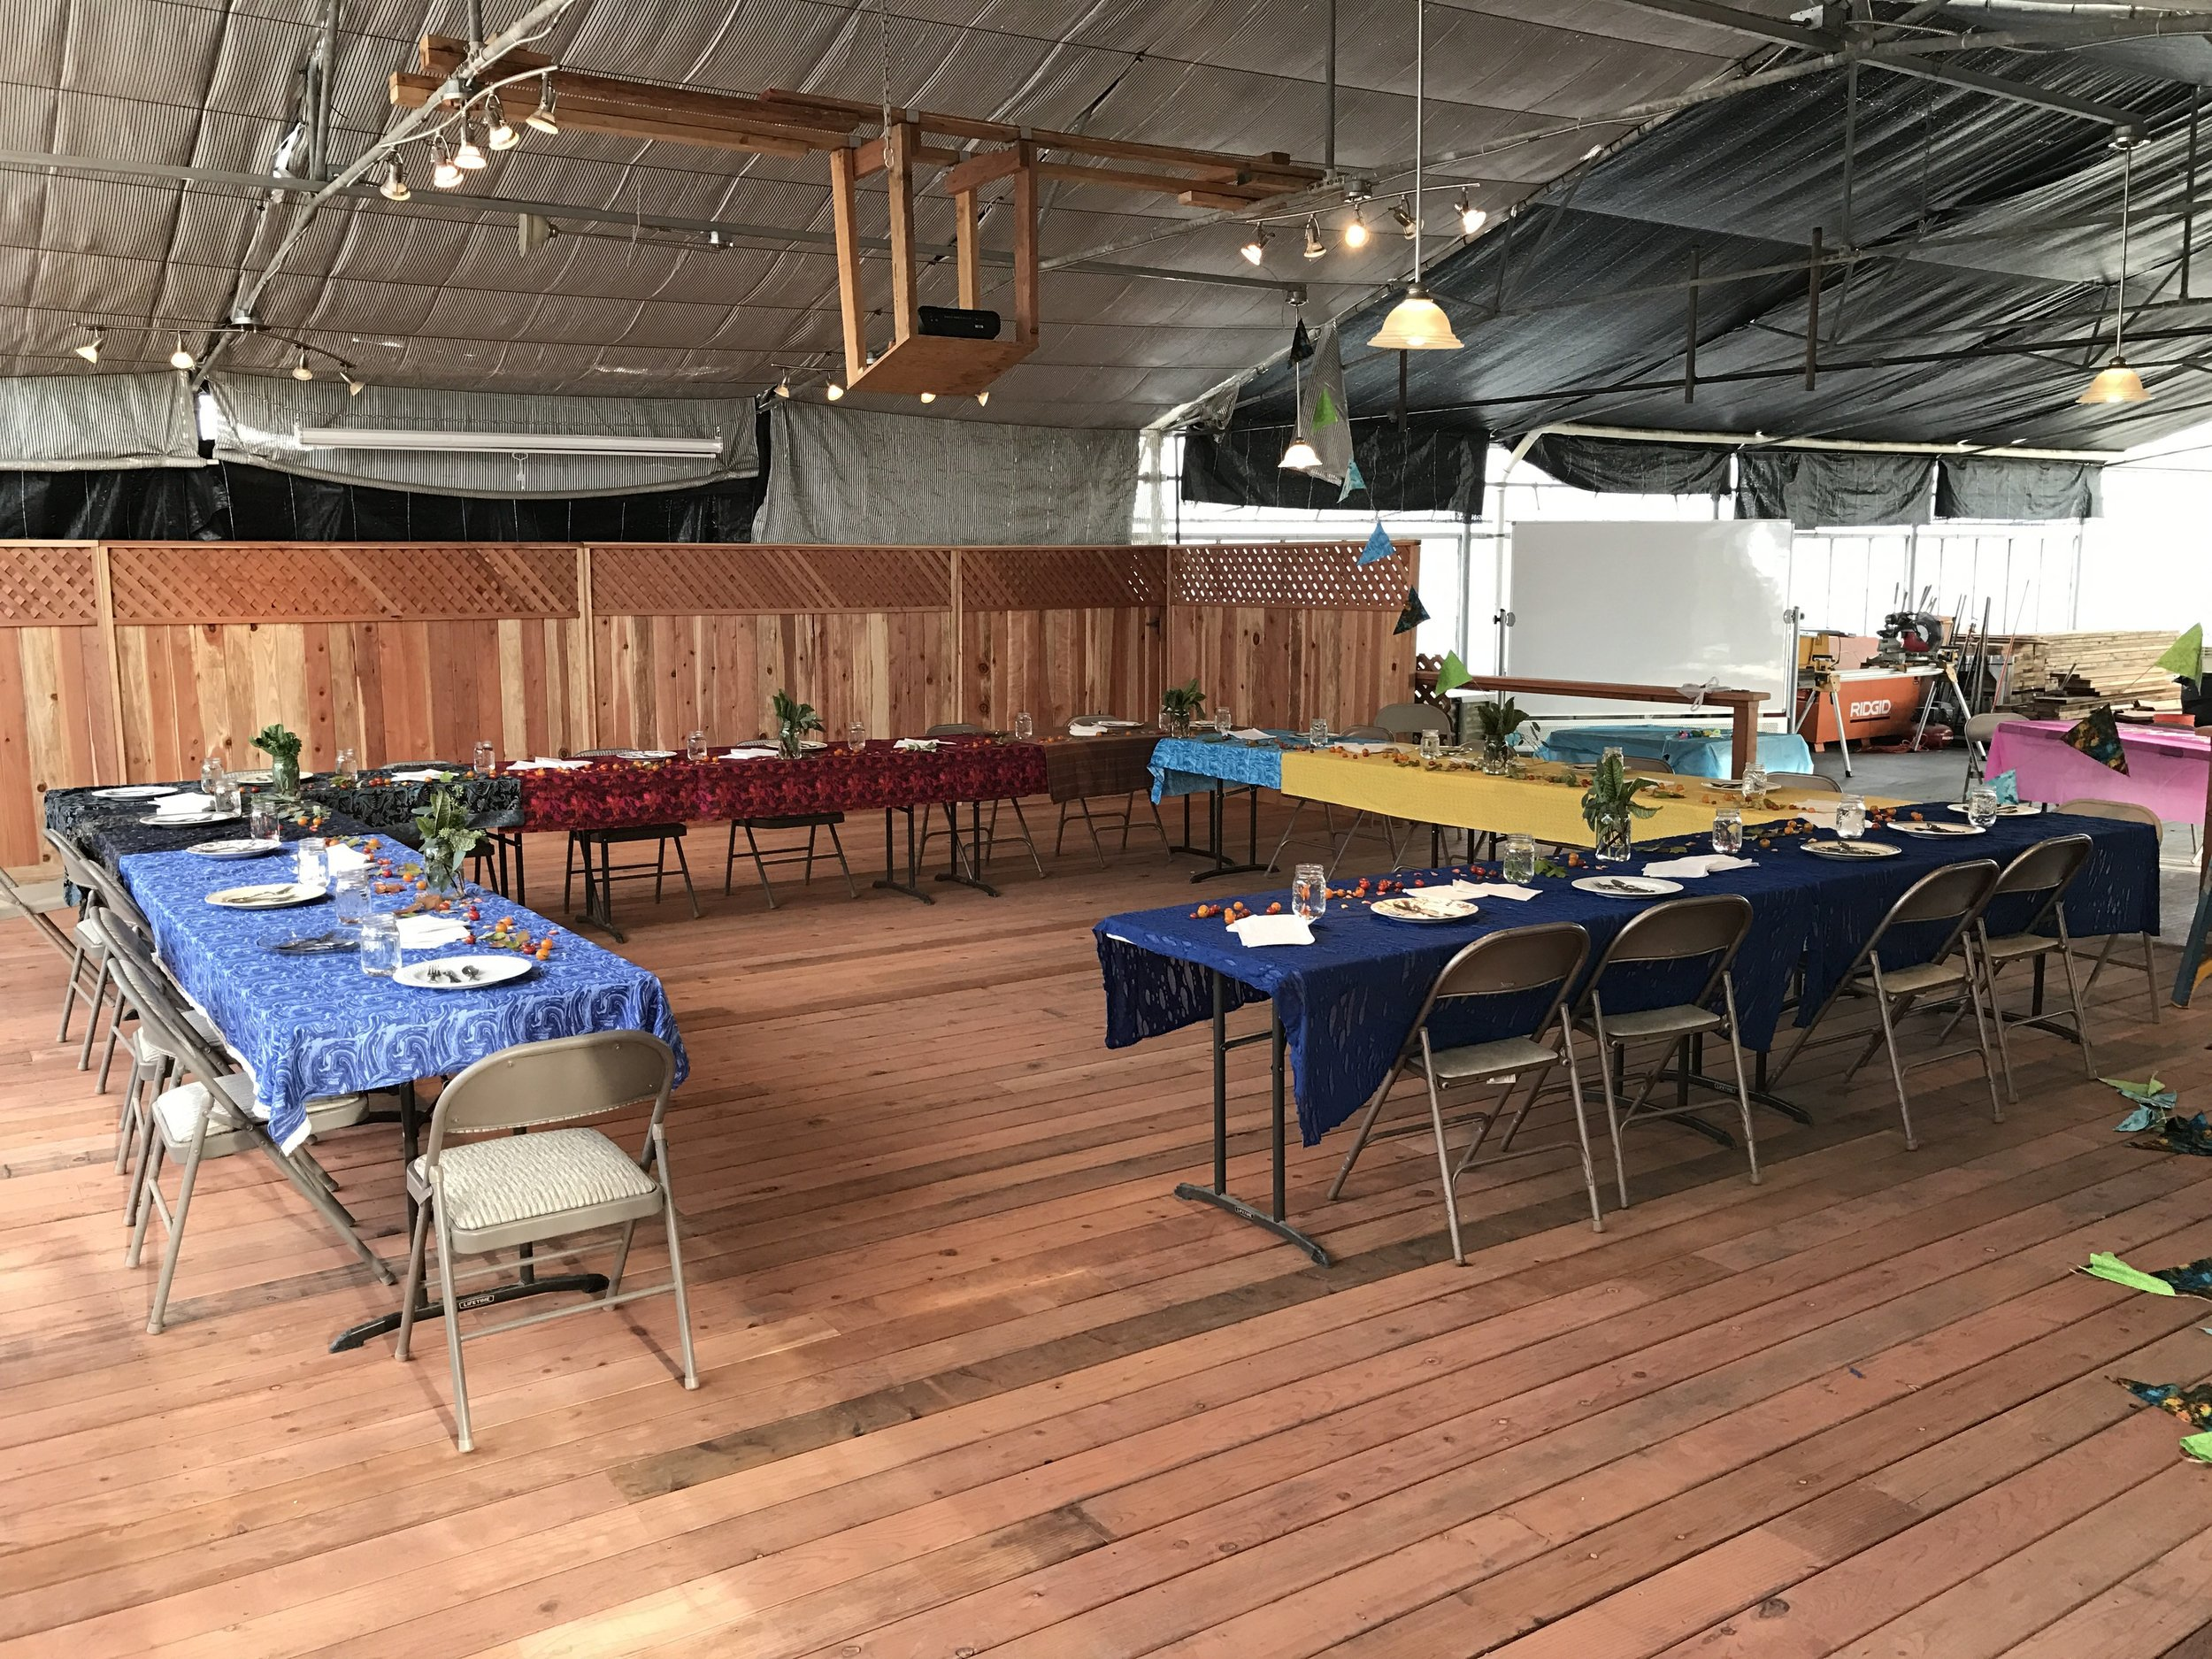 The Ourboros Farms event space is set up for a luncheon in this photo.